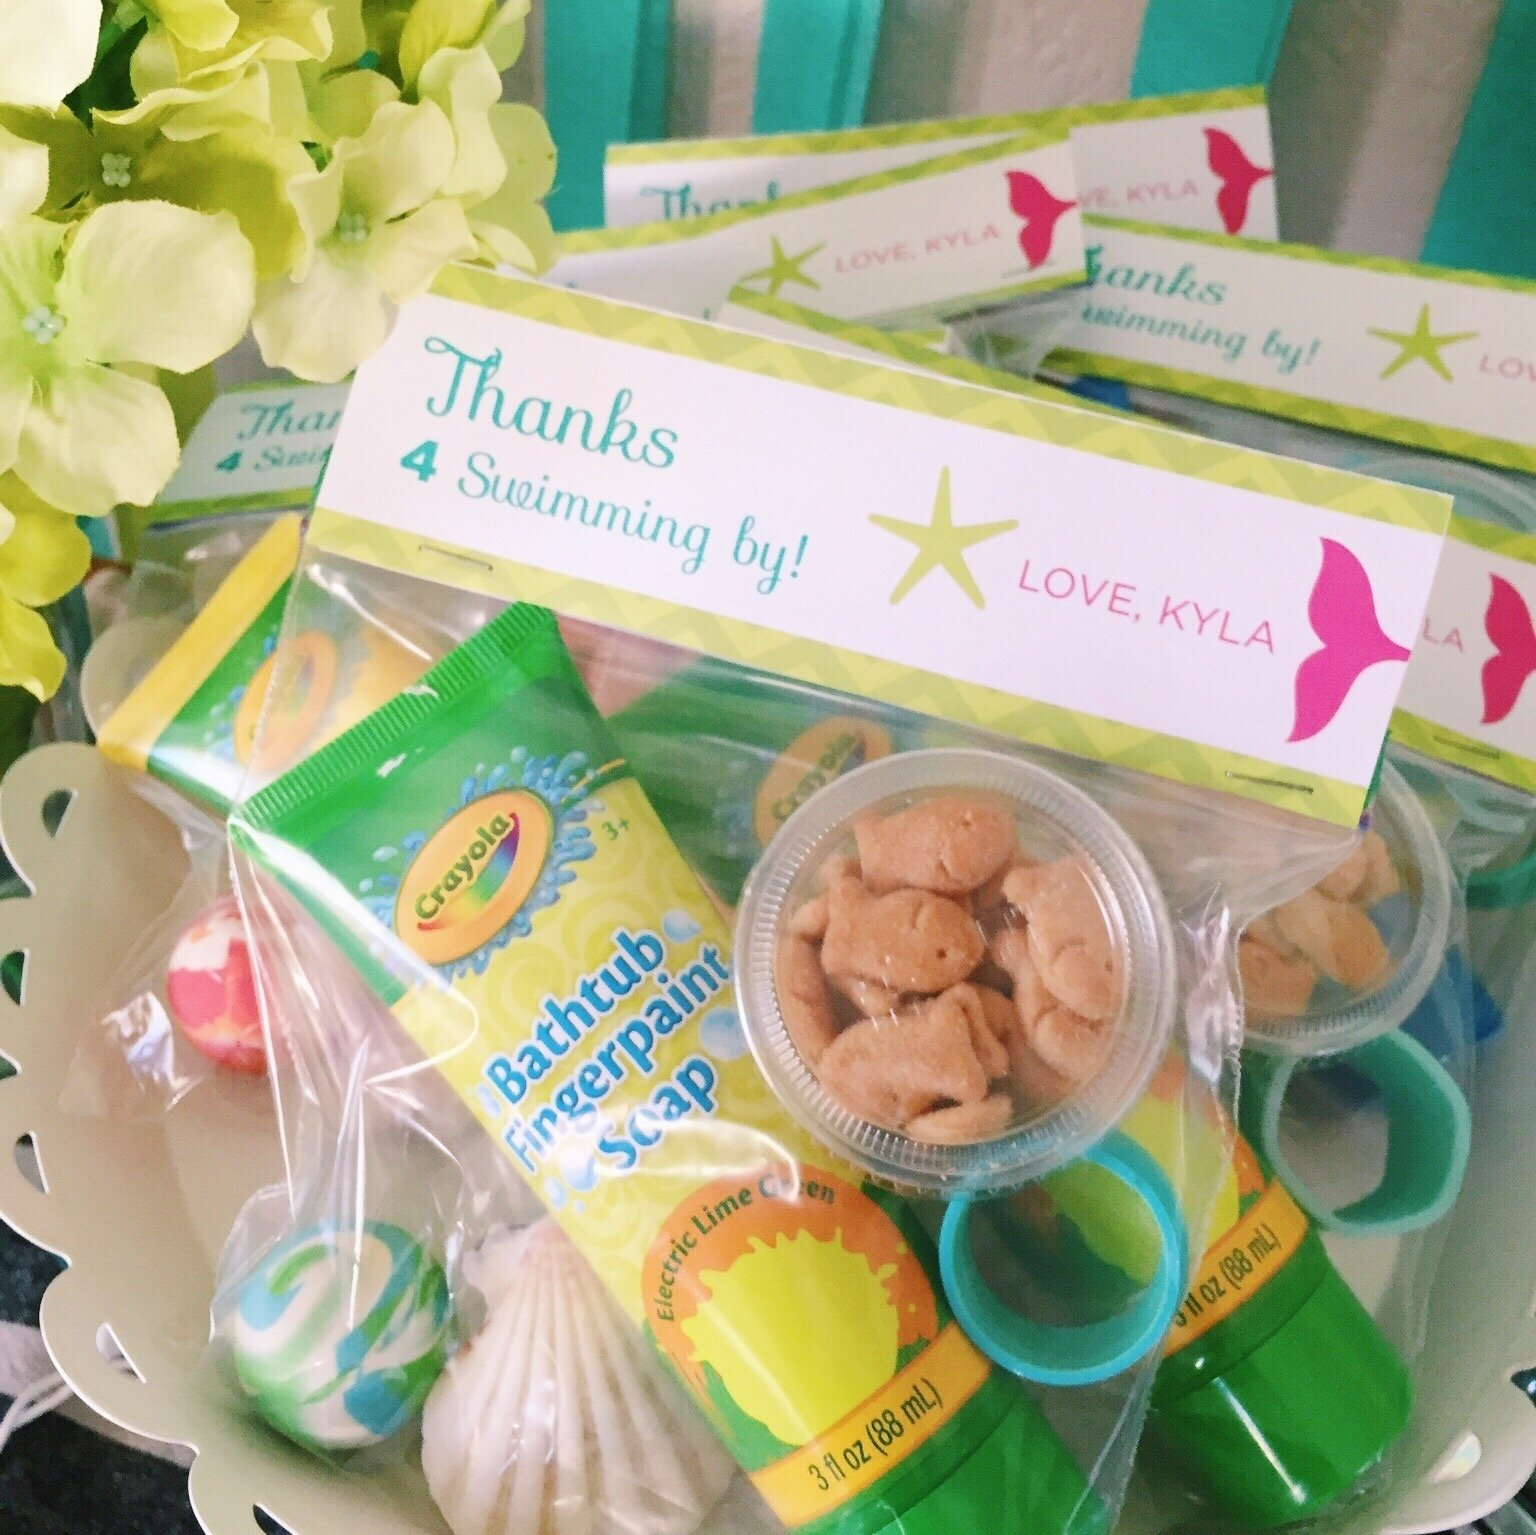 10 Nice Goodie Bag Ideas For Kids simple goodie bag ideas for kids birthday parties on small 2020